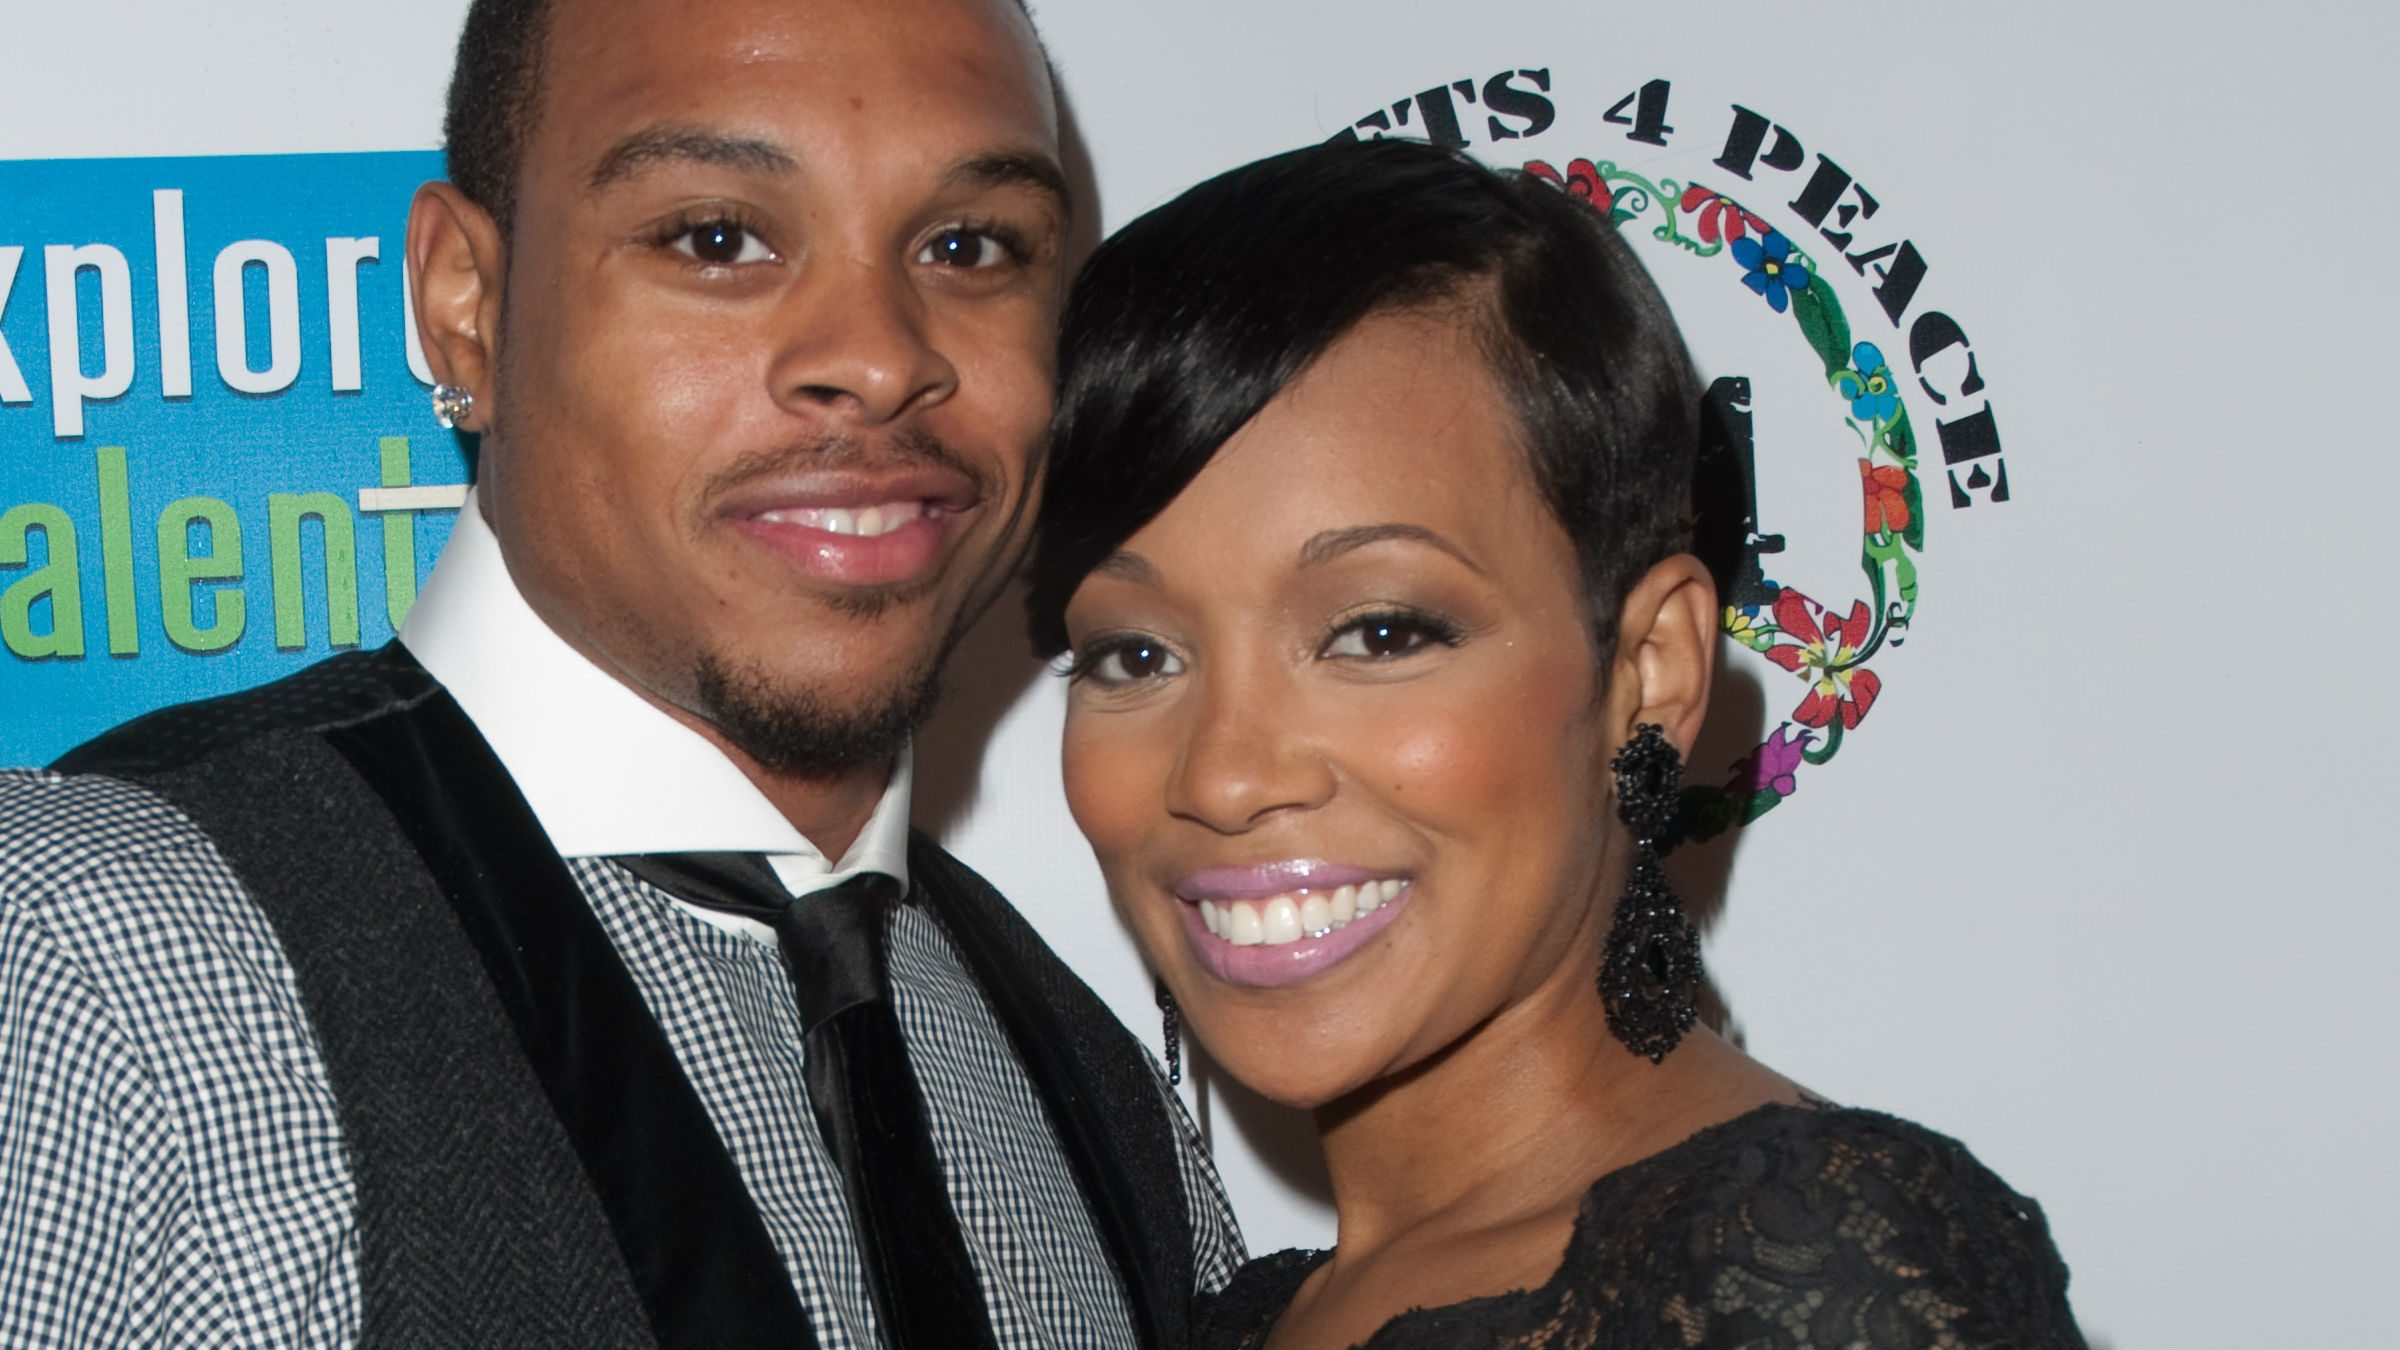 Monica endometriosis, the singer shown with her husband